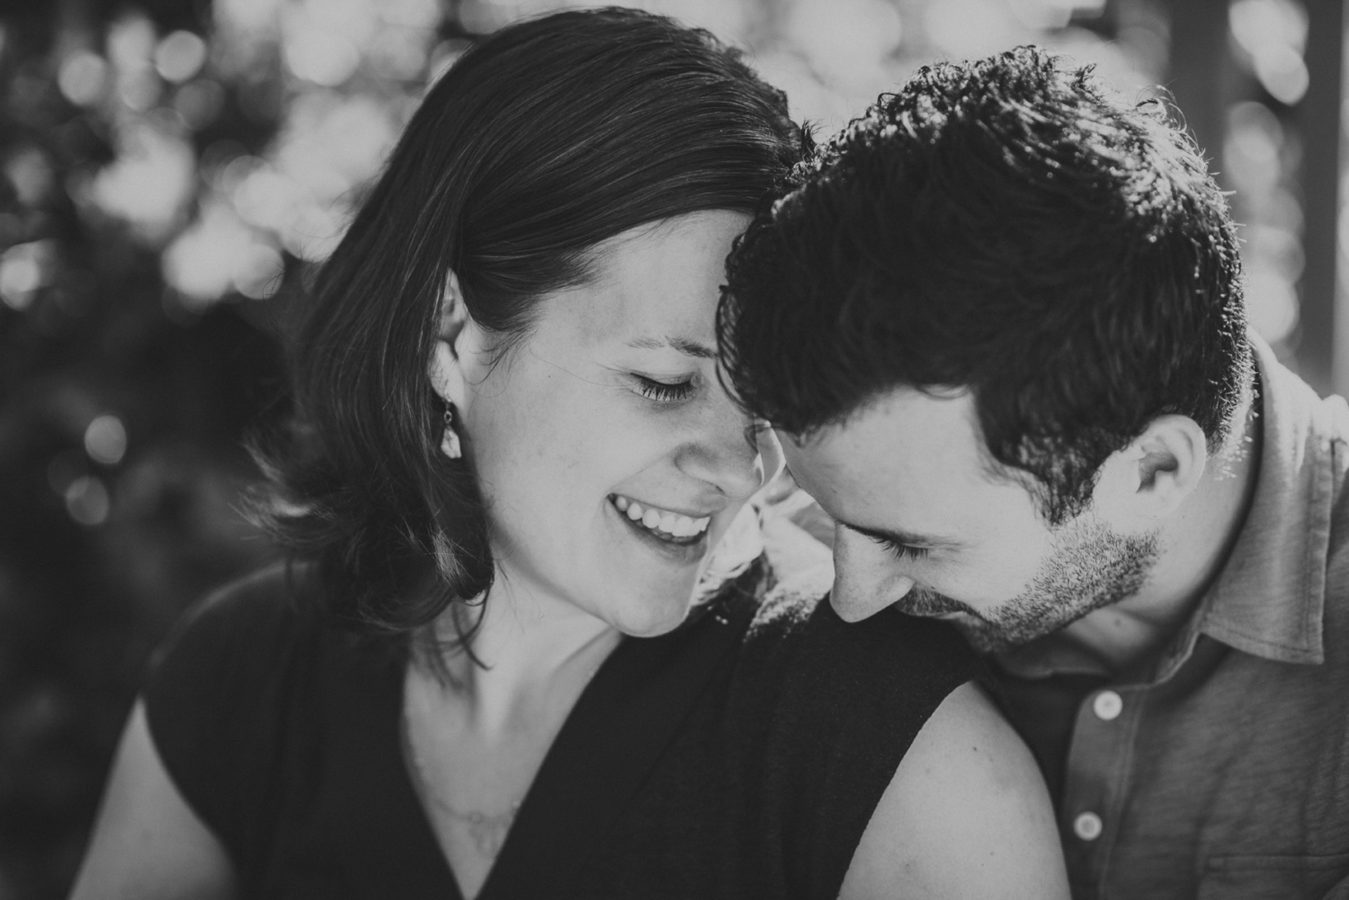 man kissing his wife's shoulder in a sweet intimate moment